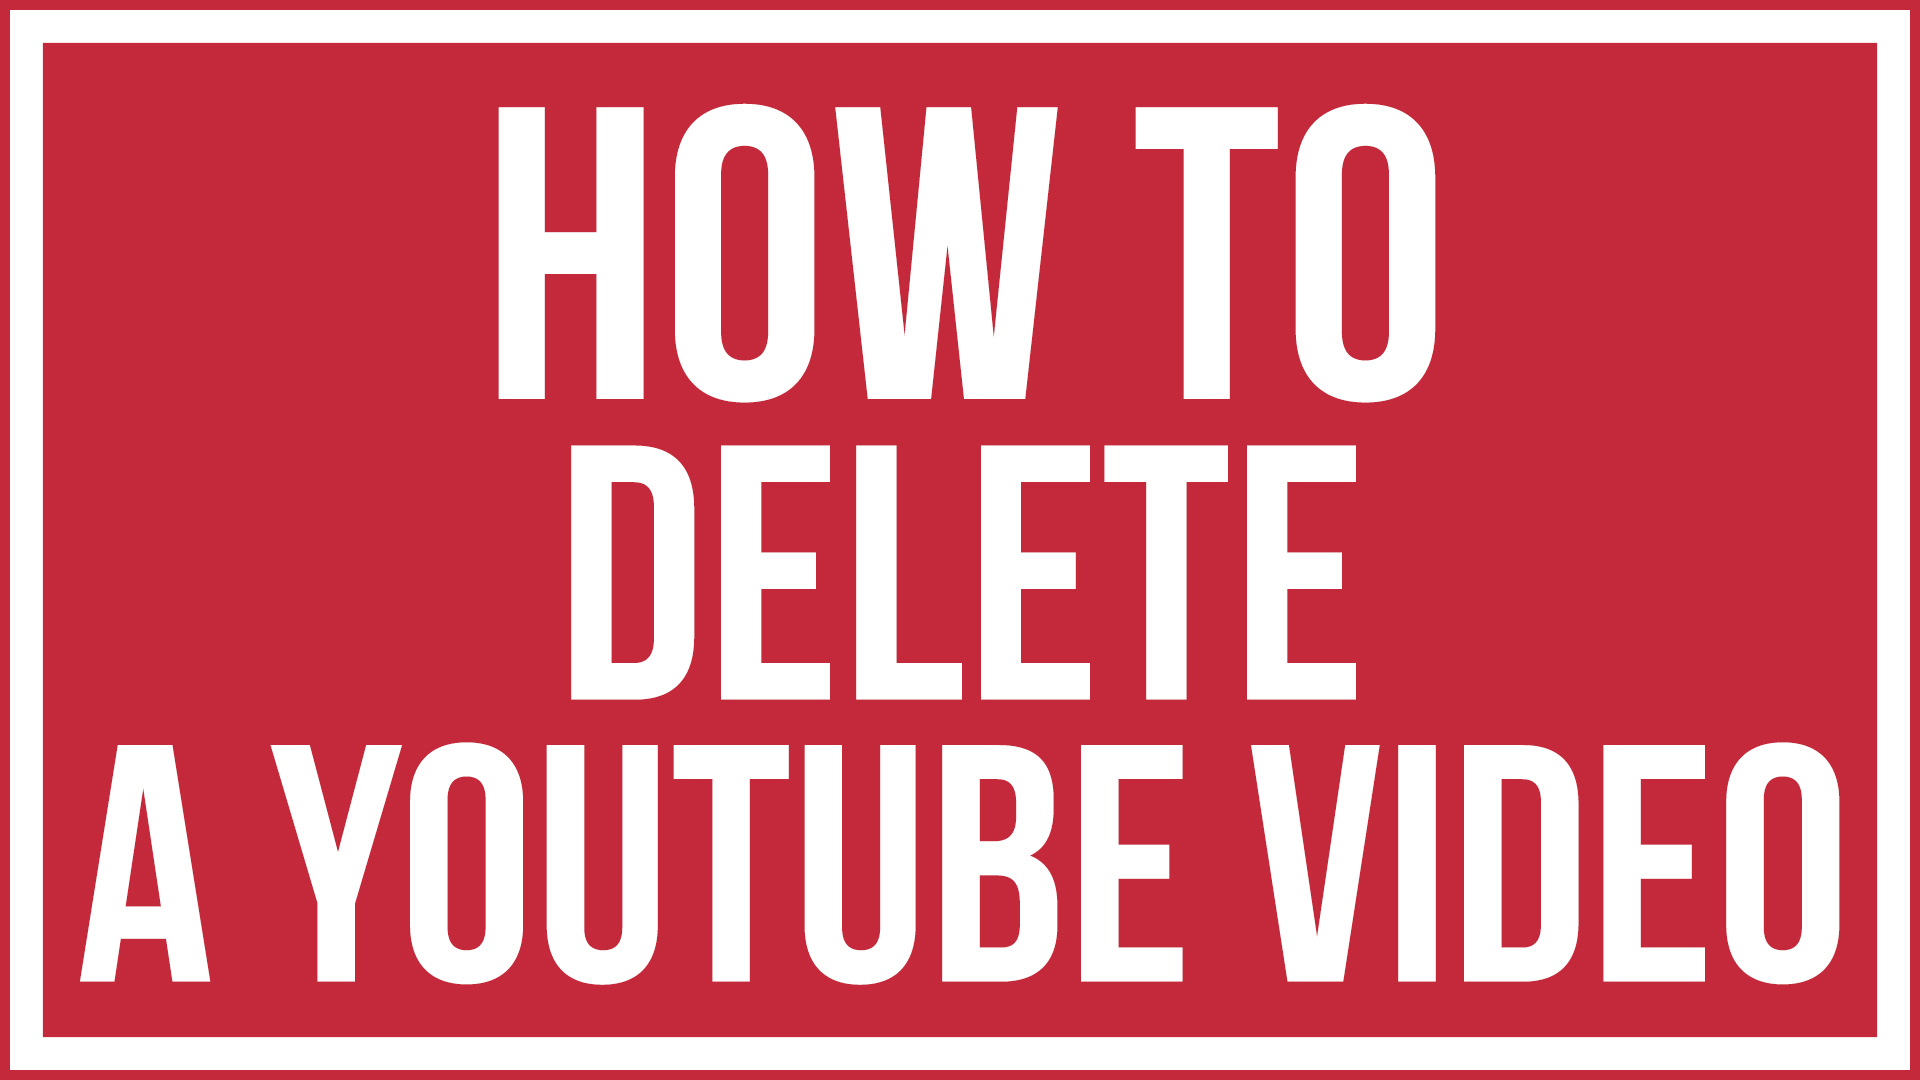 How to delete a youtube video youtube tutorial youtube creators in this tutorial i am going to show you how to delete a youtube video lets say you uploaded a video a couple years back and to say it kindly it was ccuart Choice Image